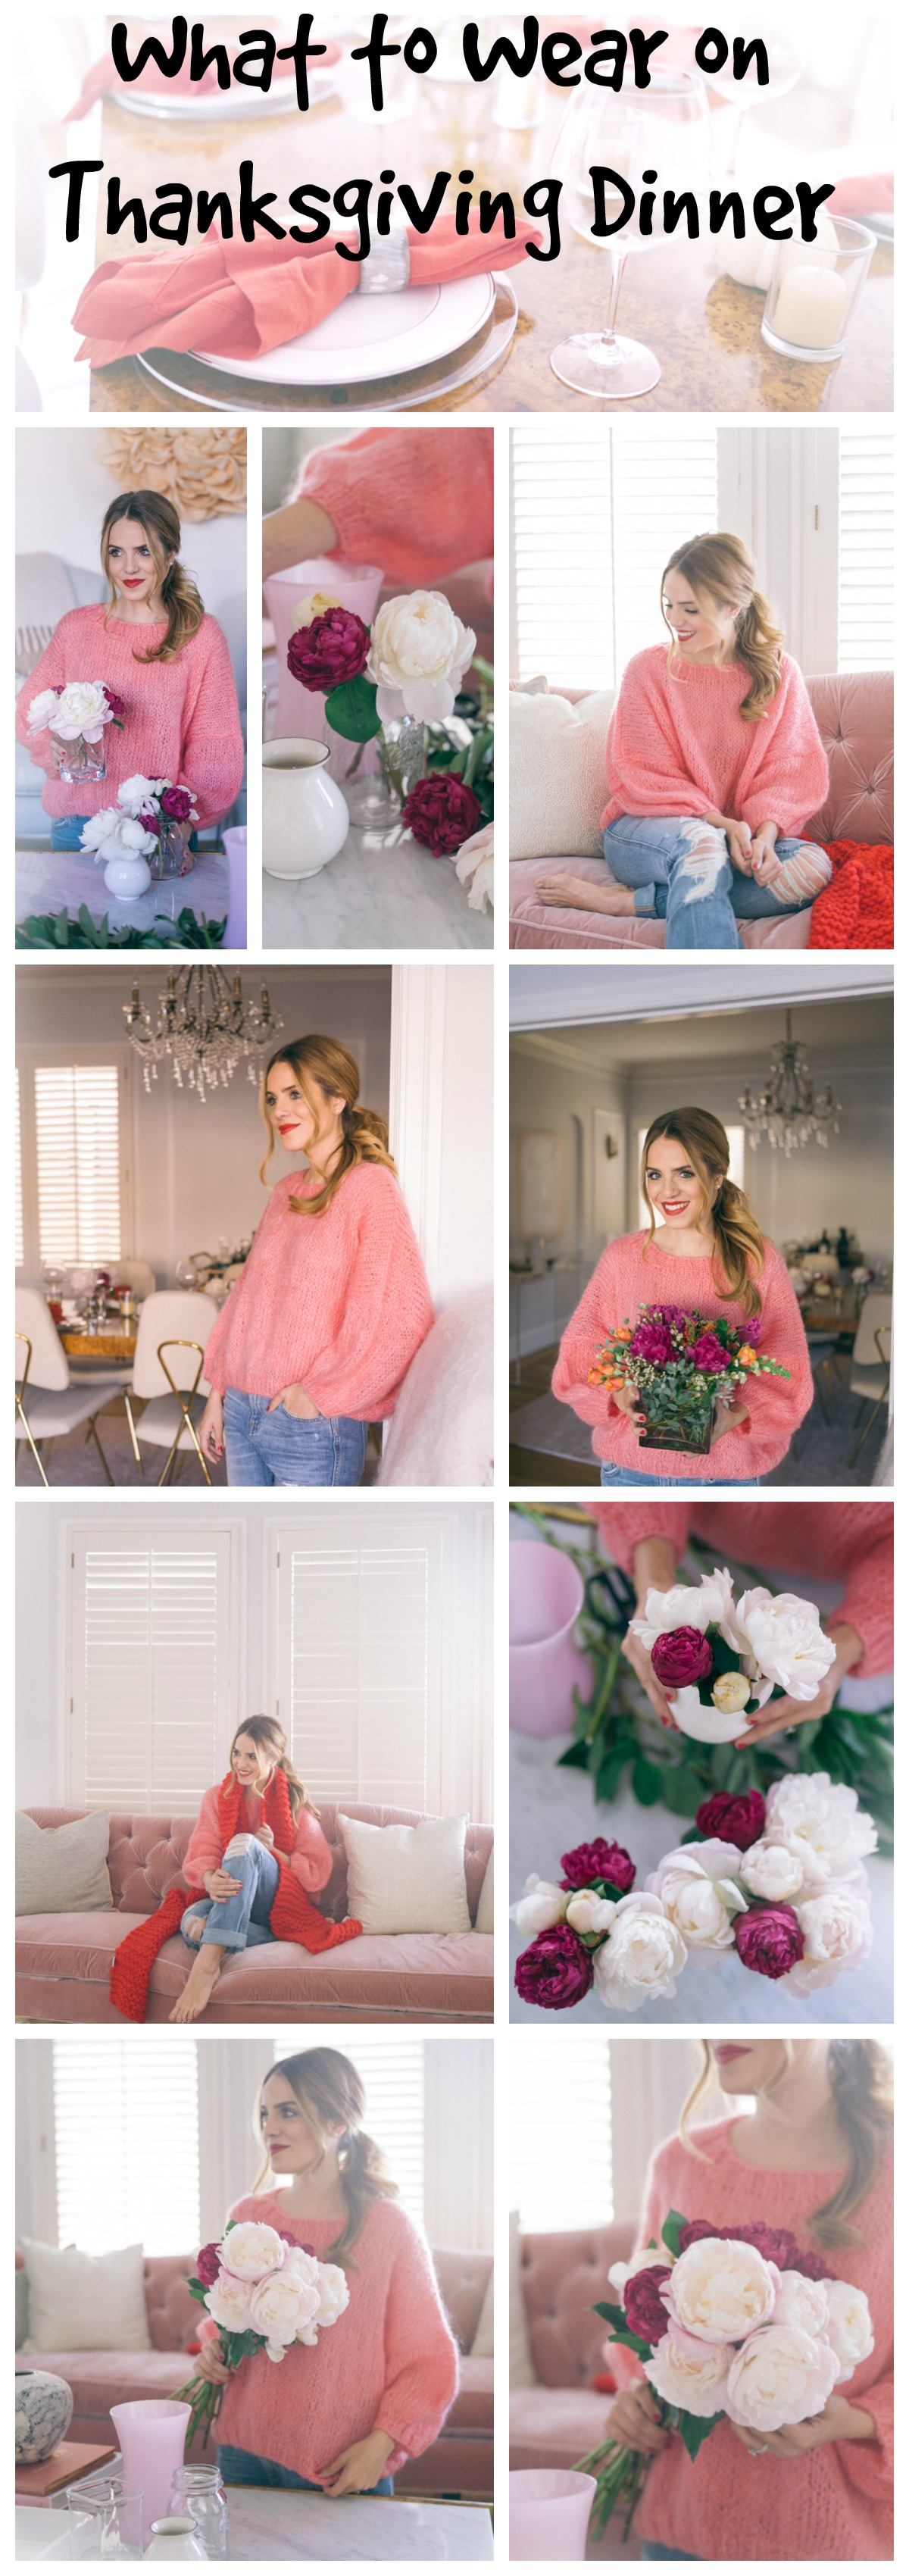 2018 Thanksgiving Outfits Ideas 30 Ways To Dress Up On